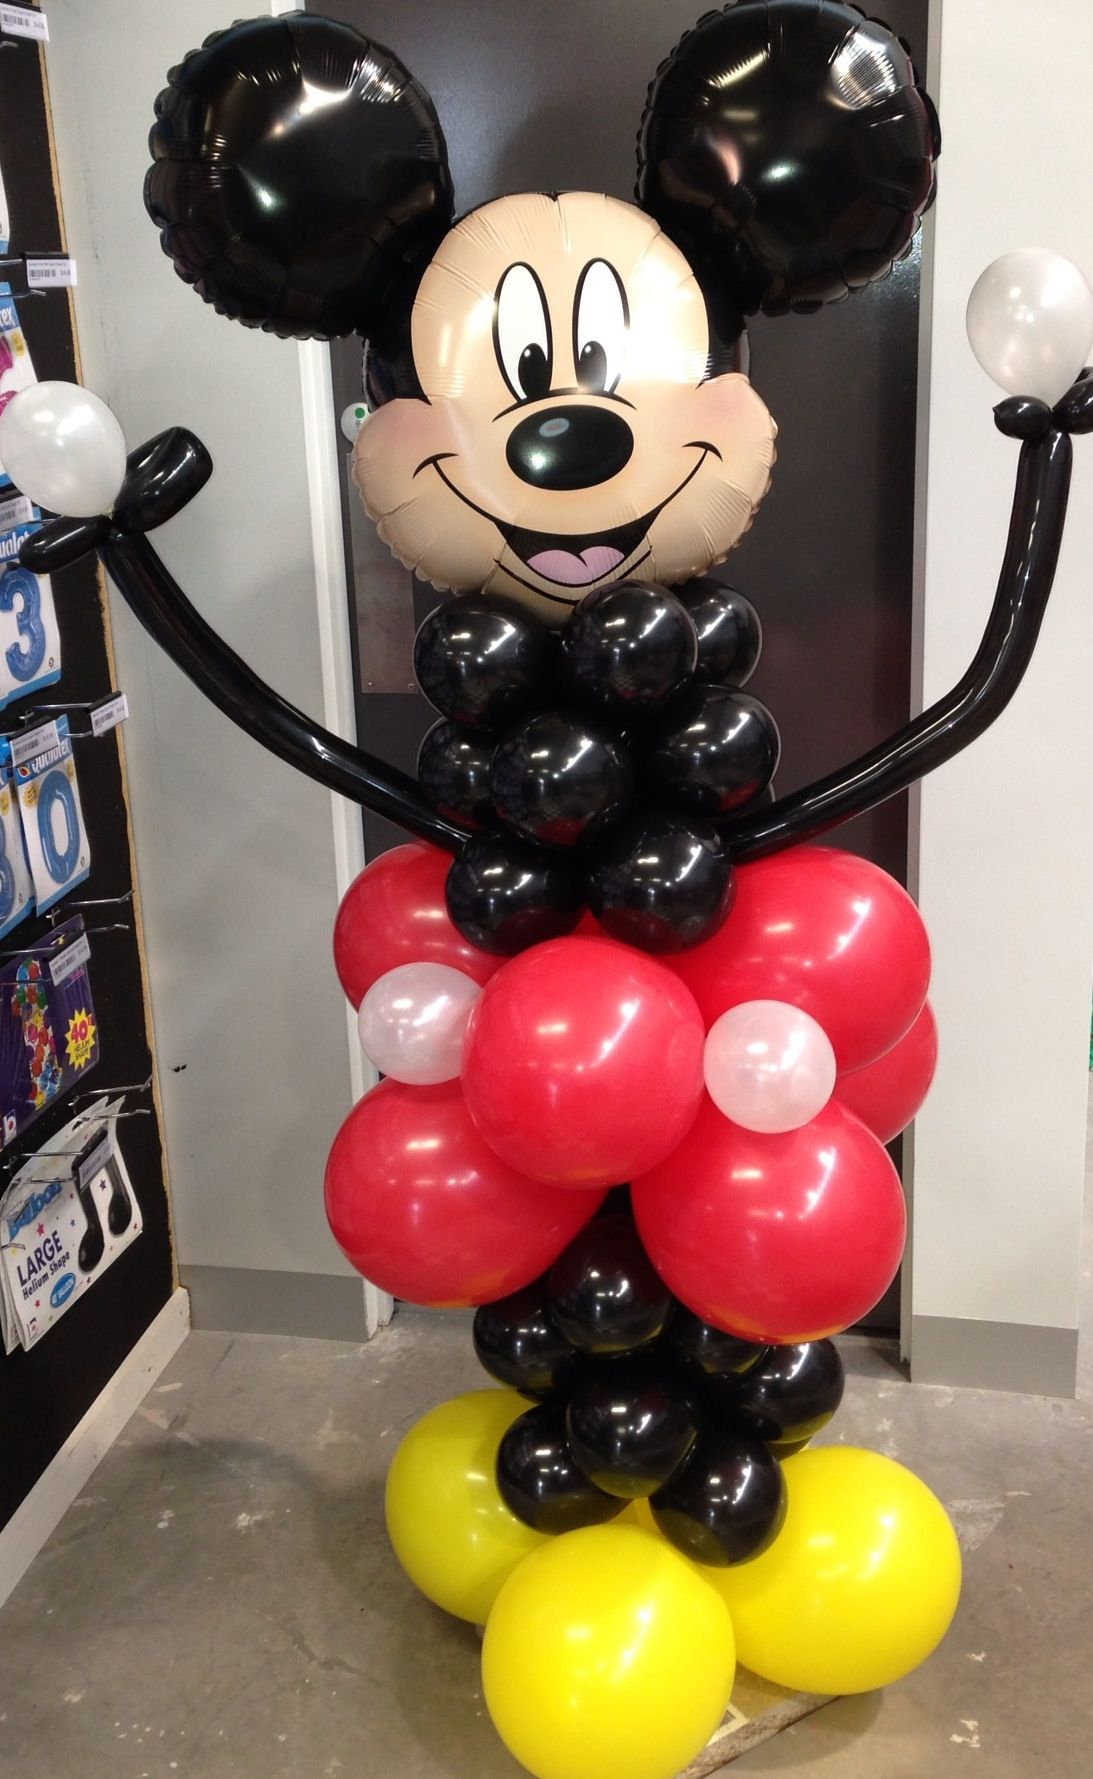 Mickey mouse floor decoration. By Let's Celebrate Parties Point Cook.